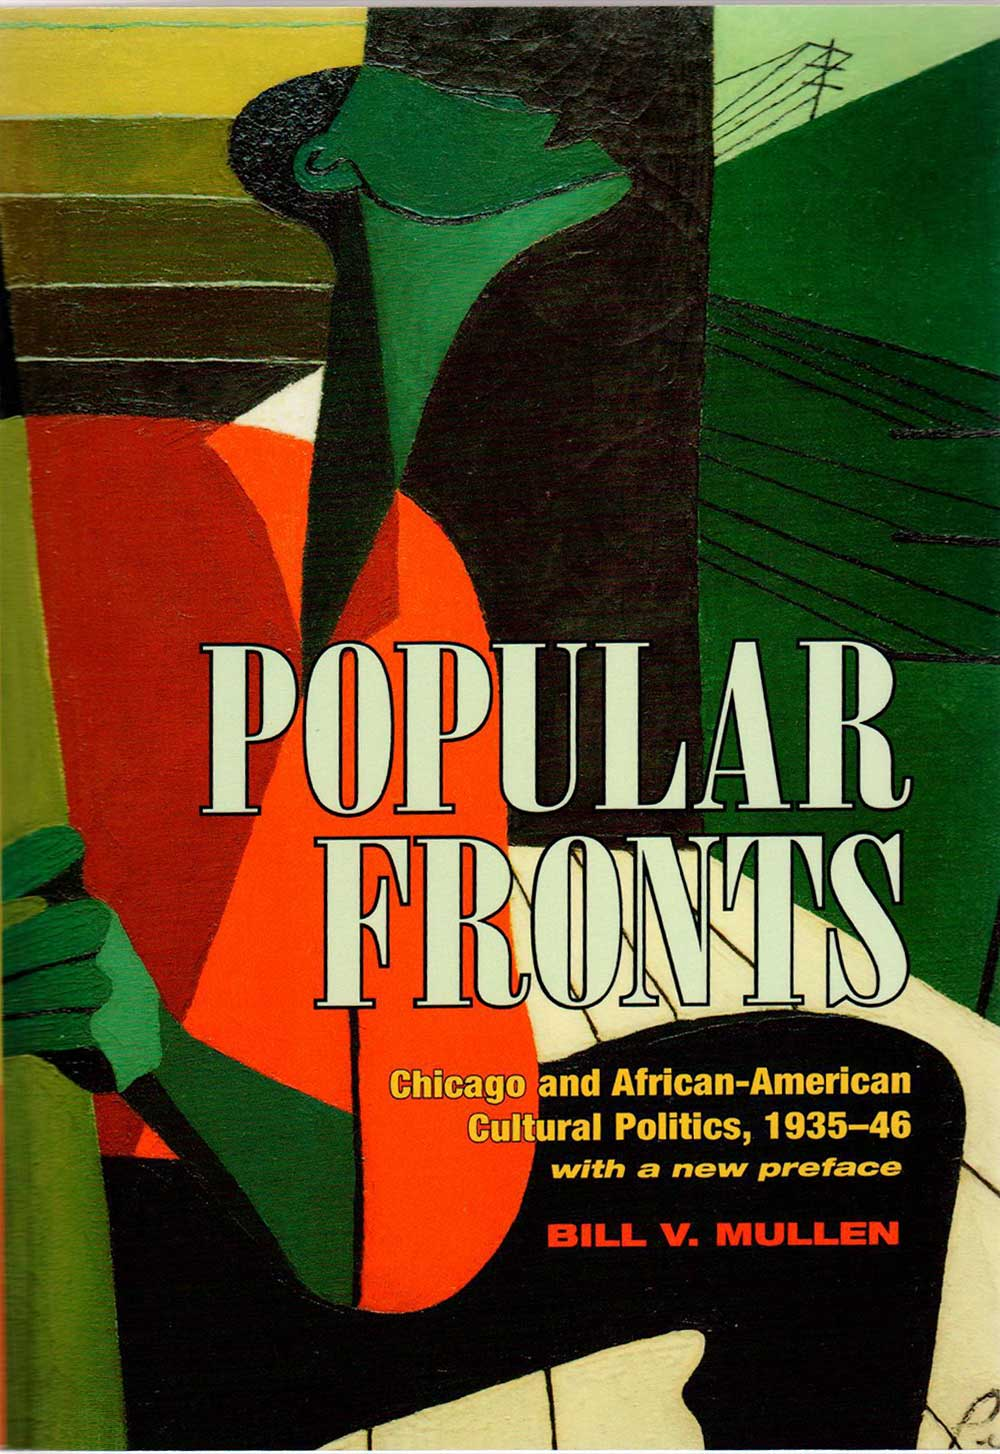 mullen-book-cover9-popular-fronts-1000px (1).jpg